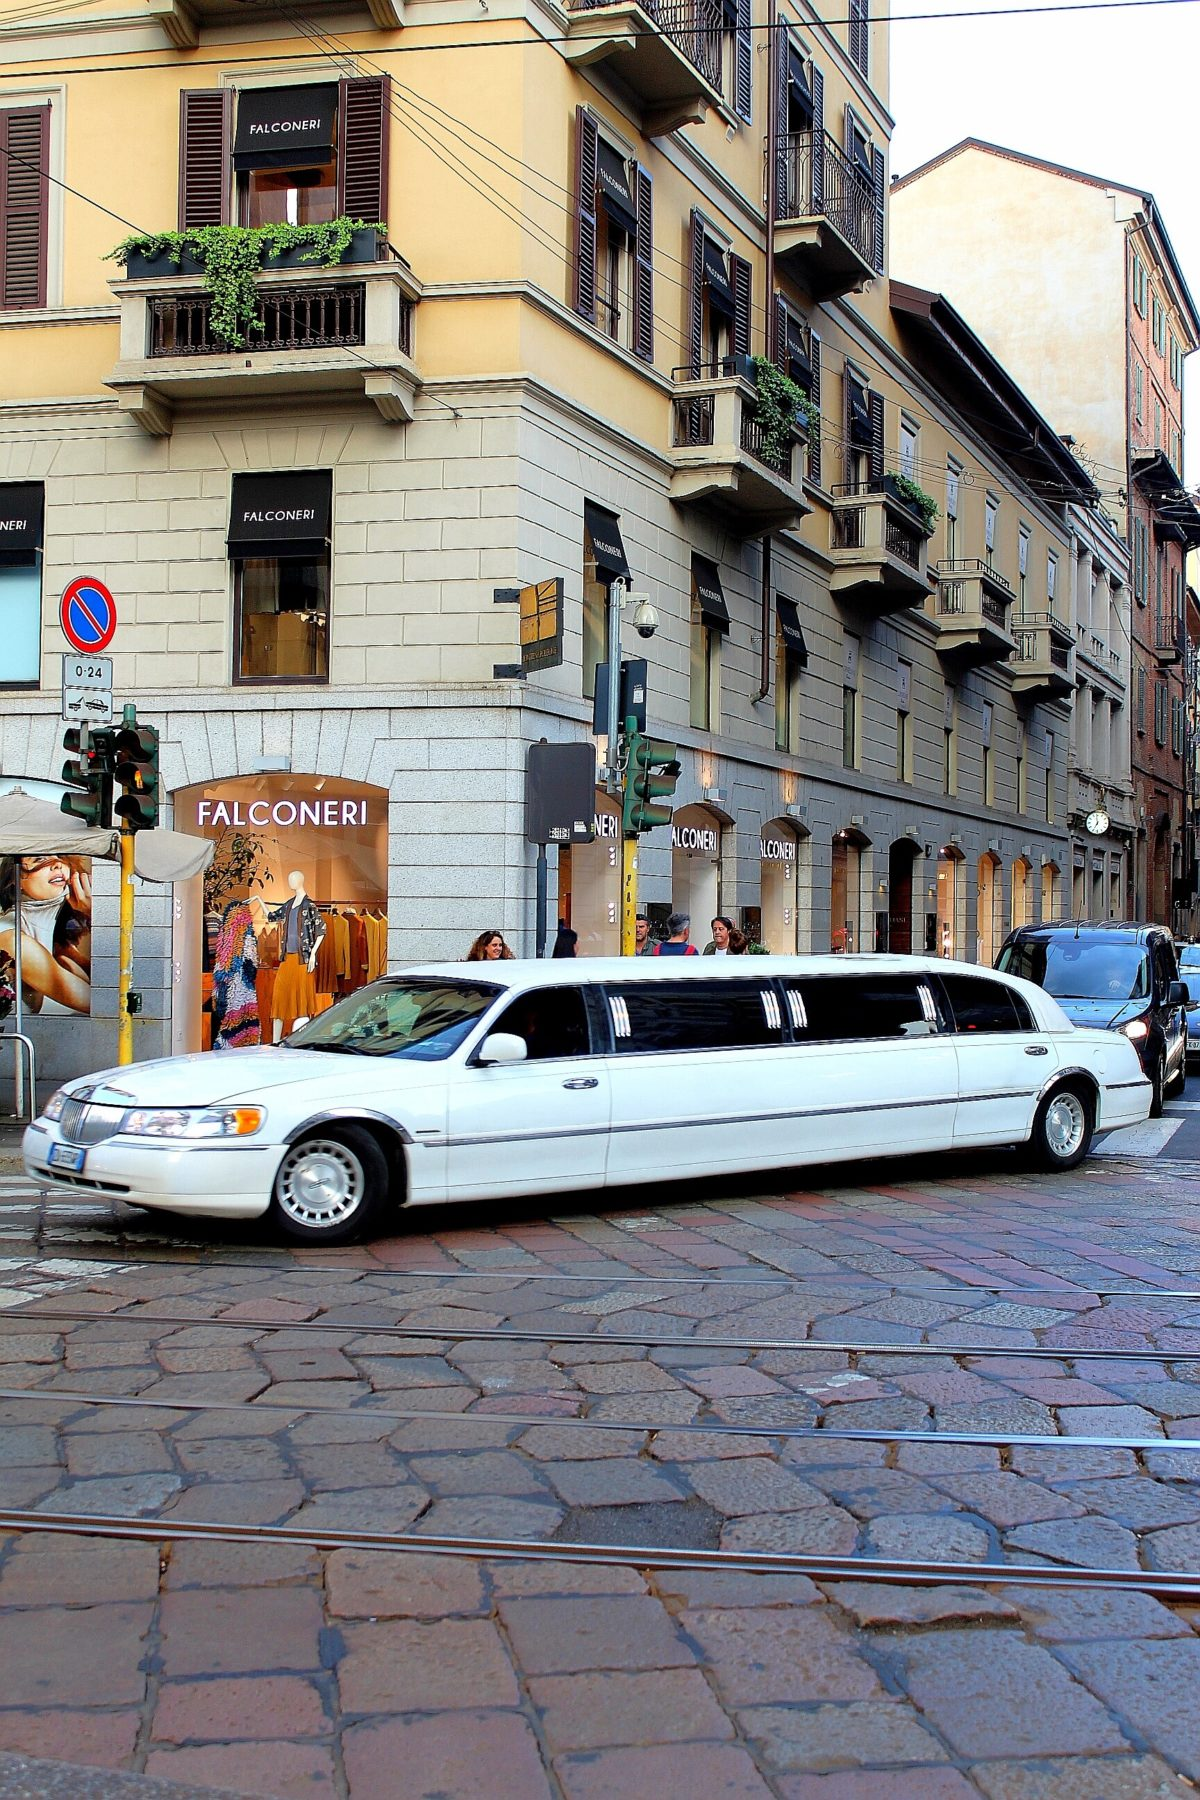 SHOPPING IN LIMOUSINE